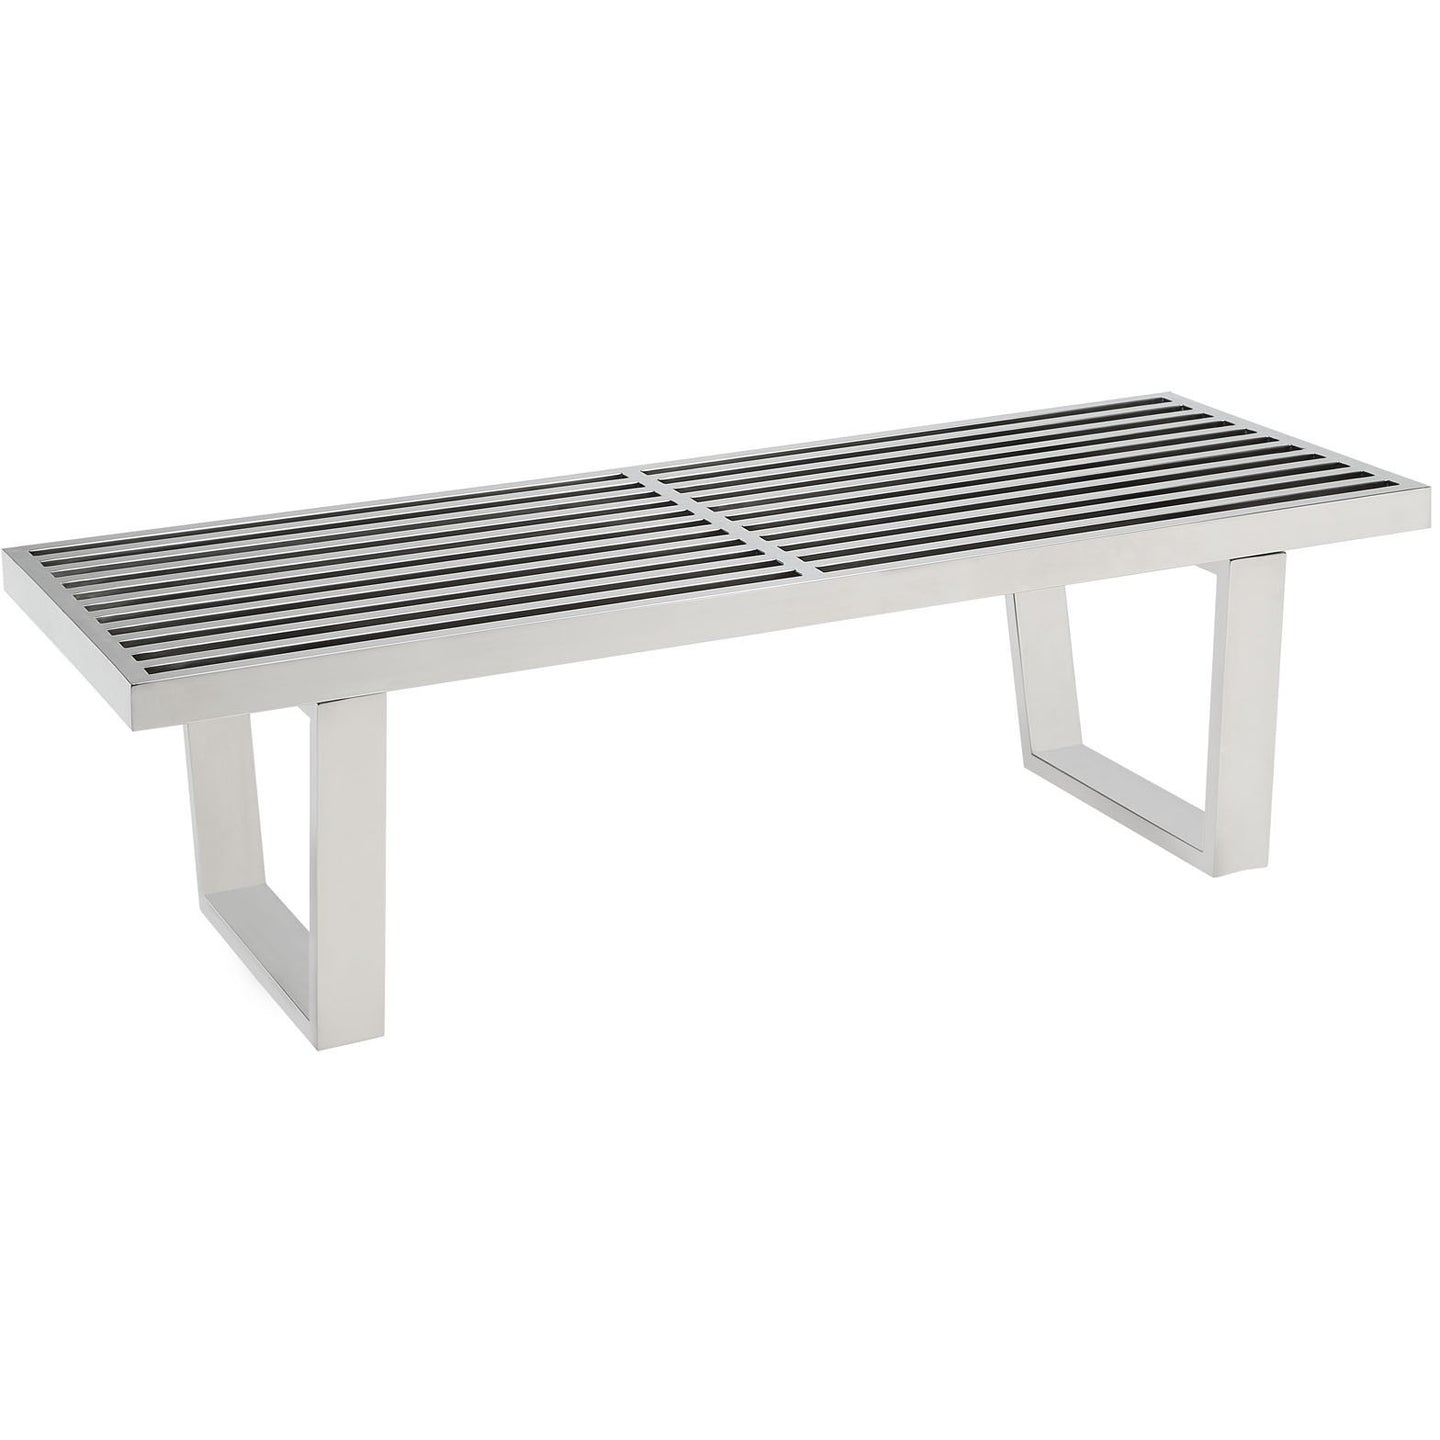 Modway Furniture Sauna 4' Stainless Steel Bench EEI-247-SLV-Minimal & Modern